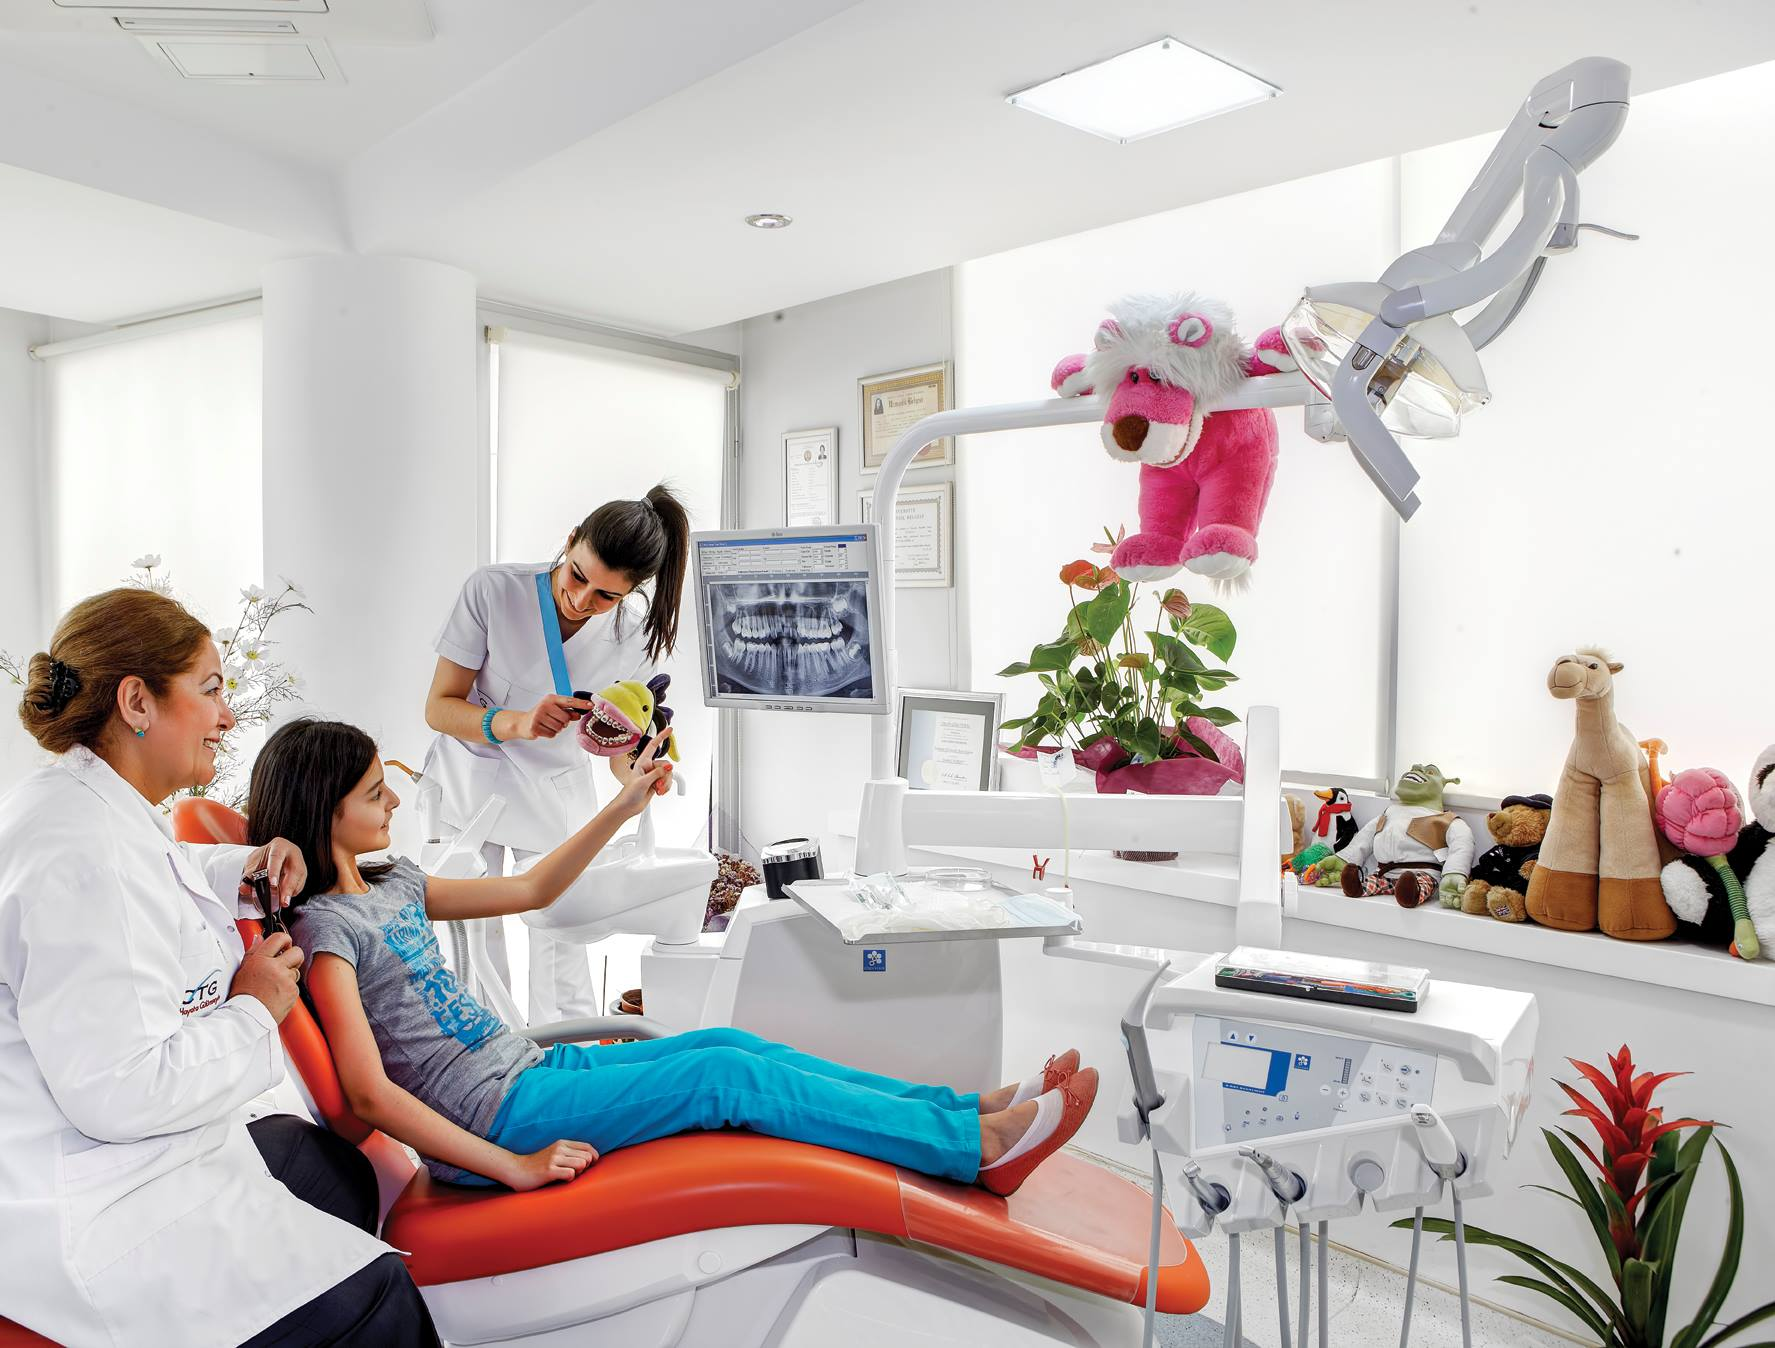 CTG dental gallery - picture 3